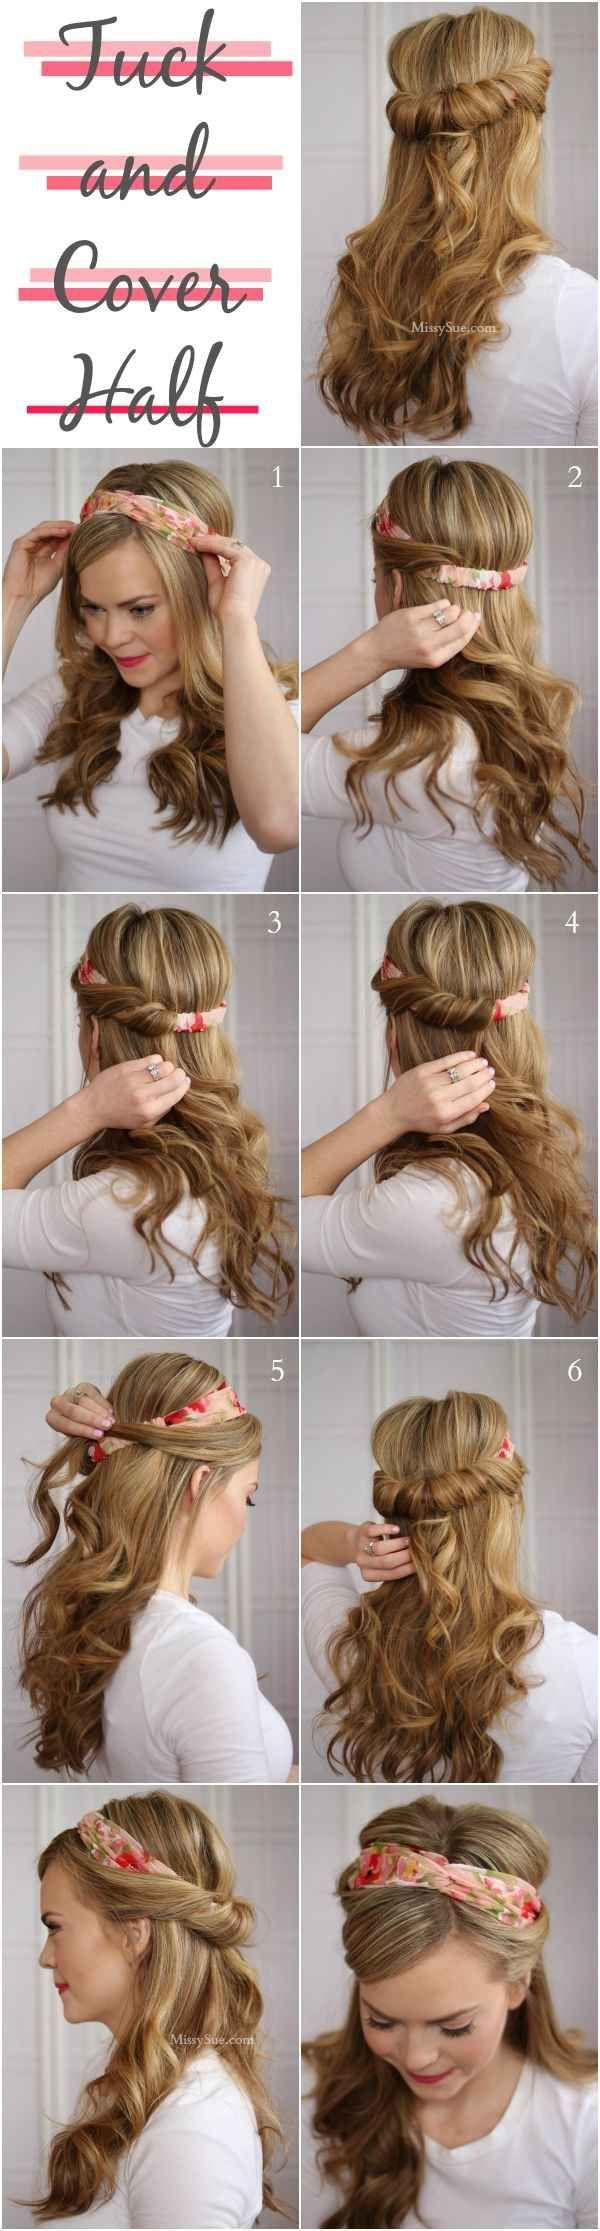 Or do the tuck and cover. | 26 Lazy Girl Hairstyling Hacks